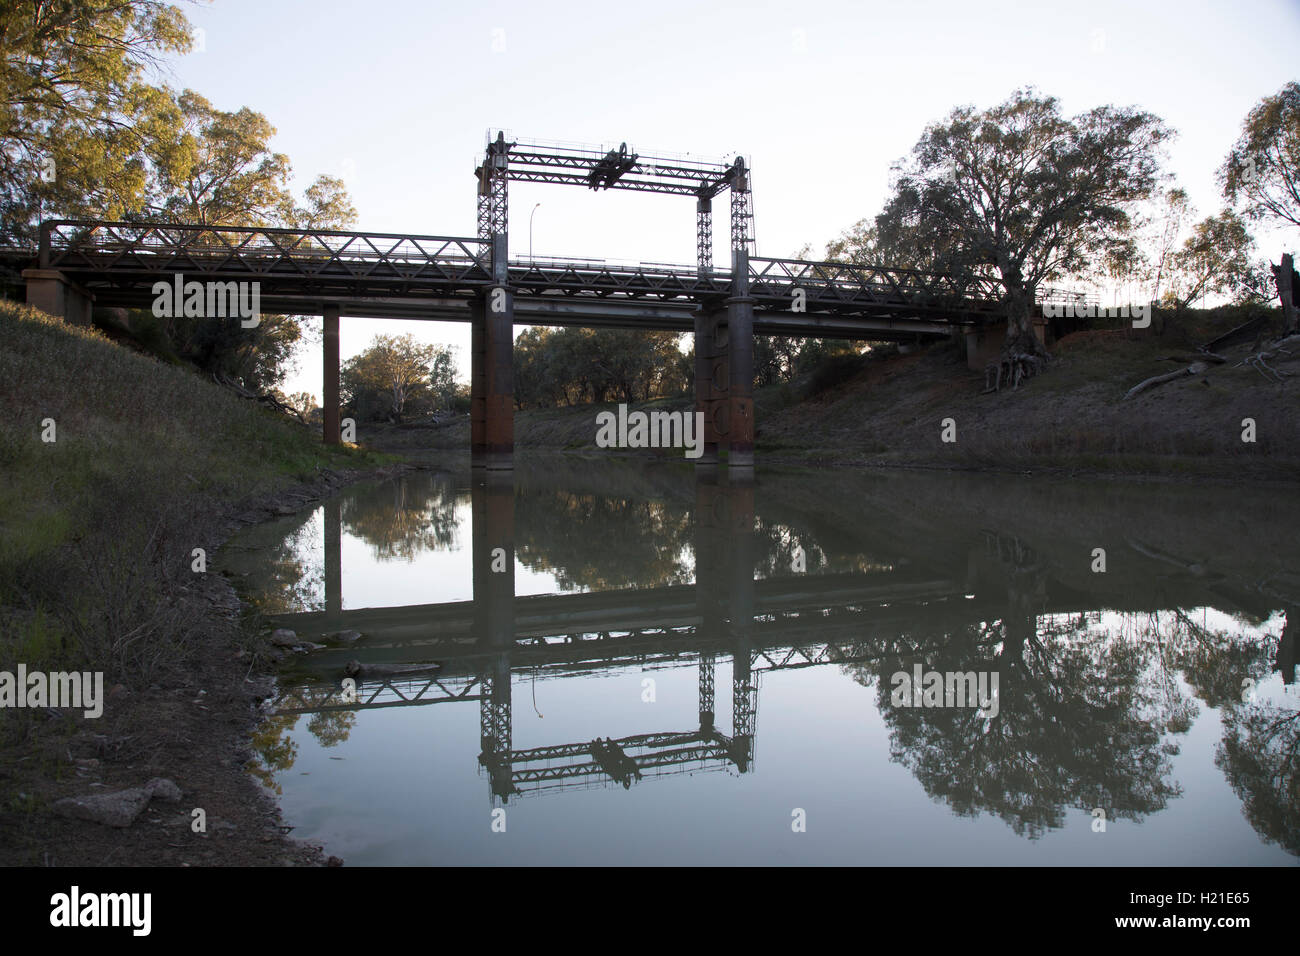 Historic lift bridge over the Darling River at Wilcannia NSW Australia - Stock Image